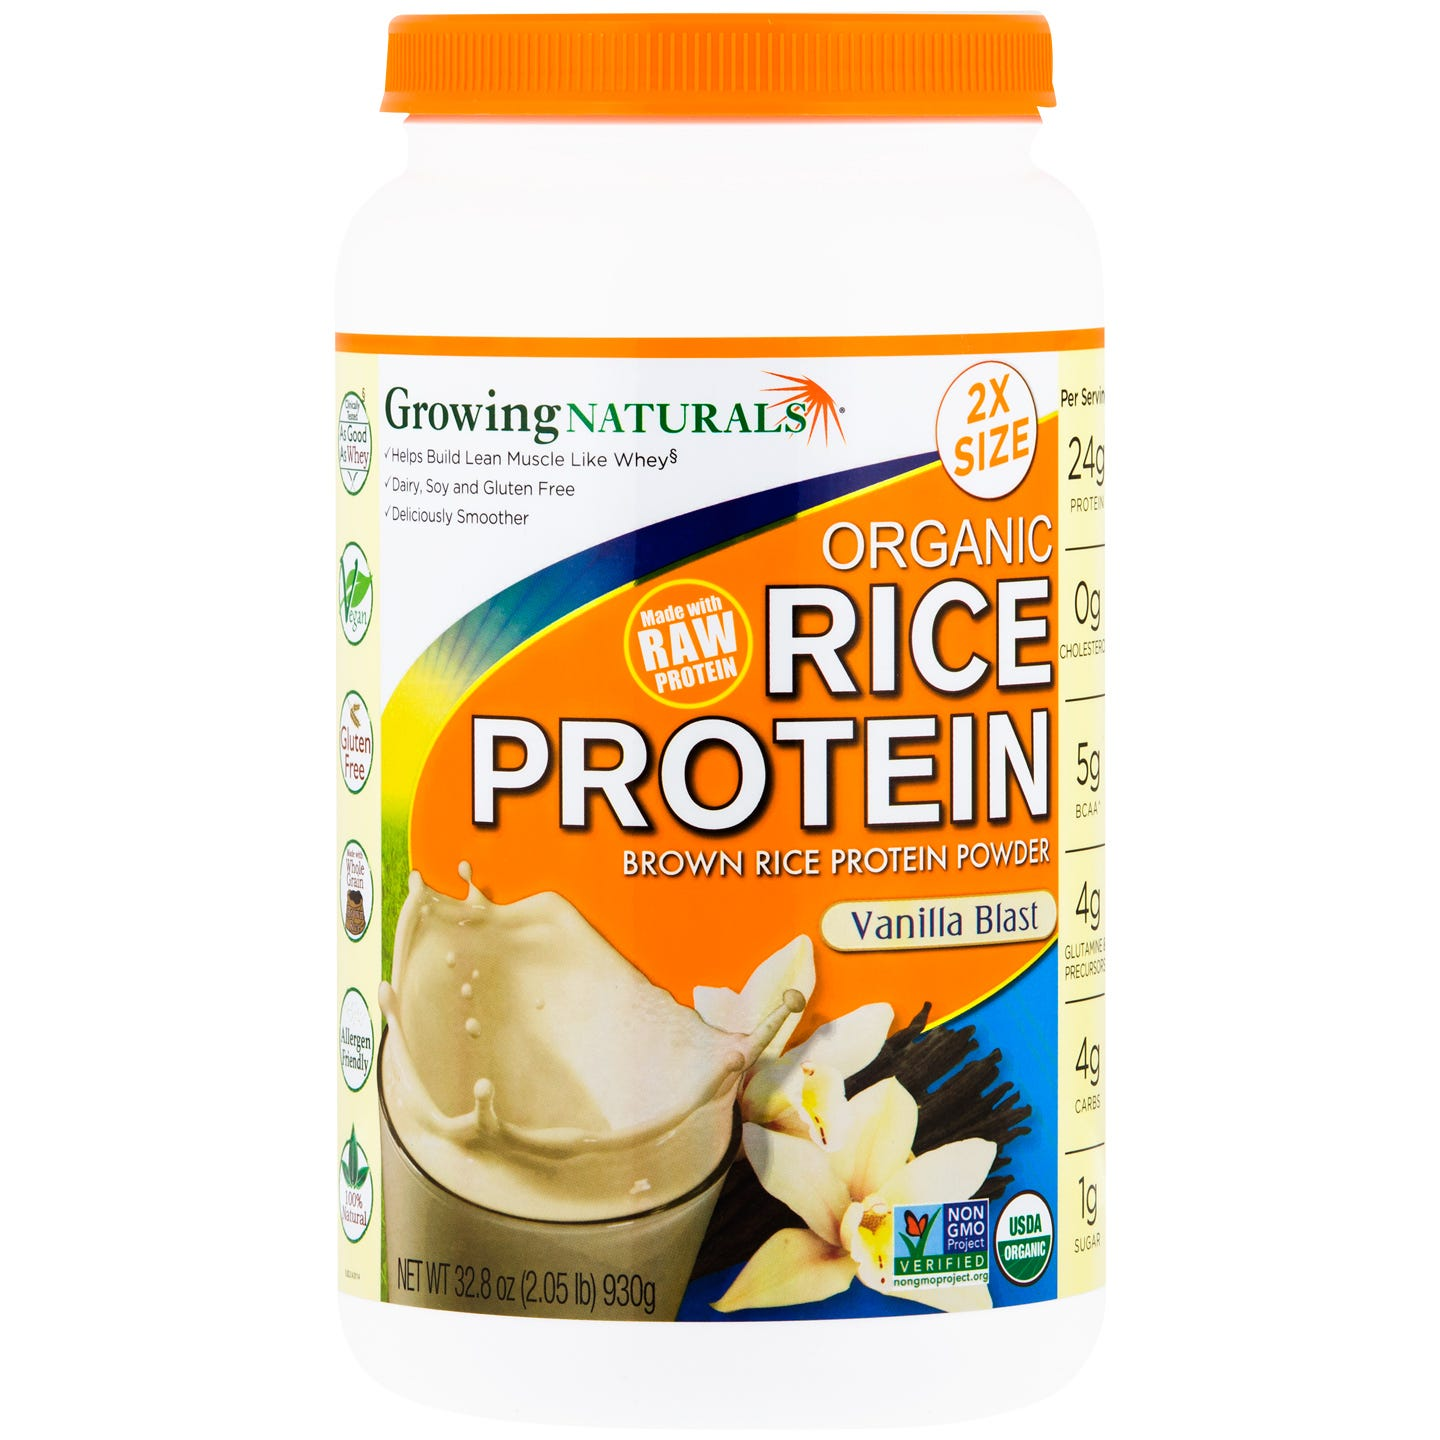 Organic Rice Protein Vanilla Blast 2.05lb, Growing Naturals - Rapid Diet Weight Loss Products Shop